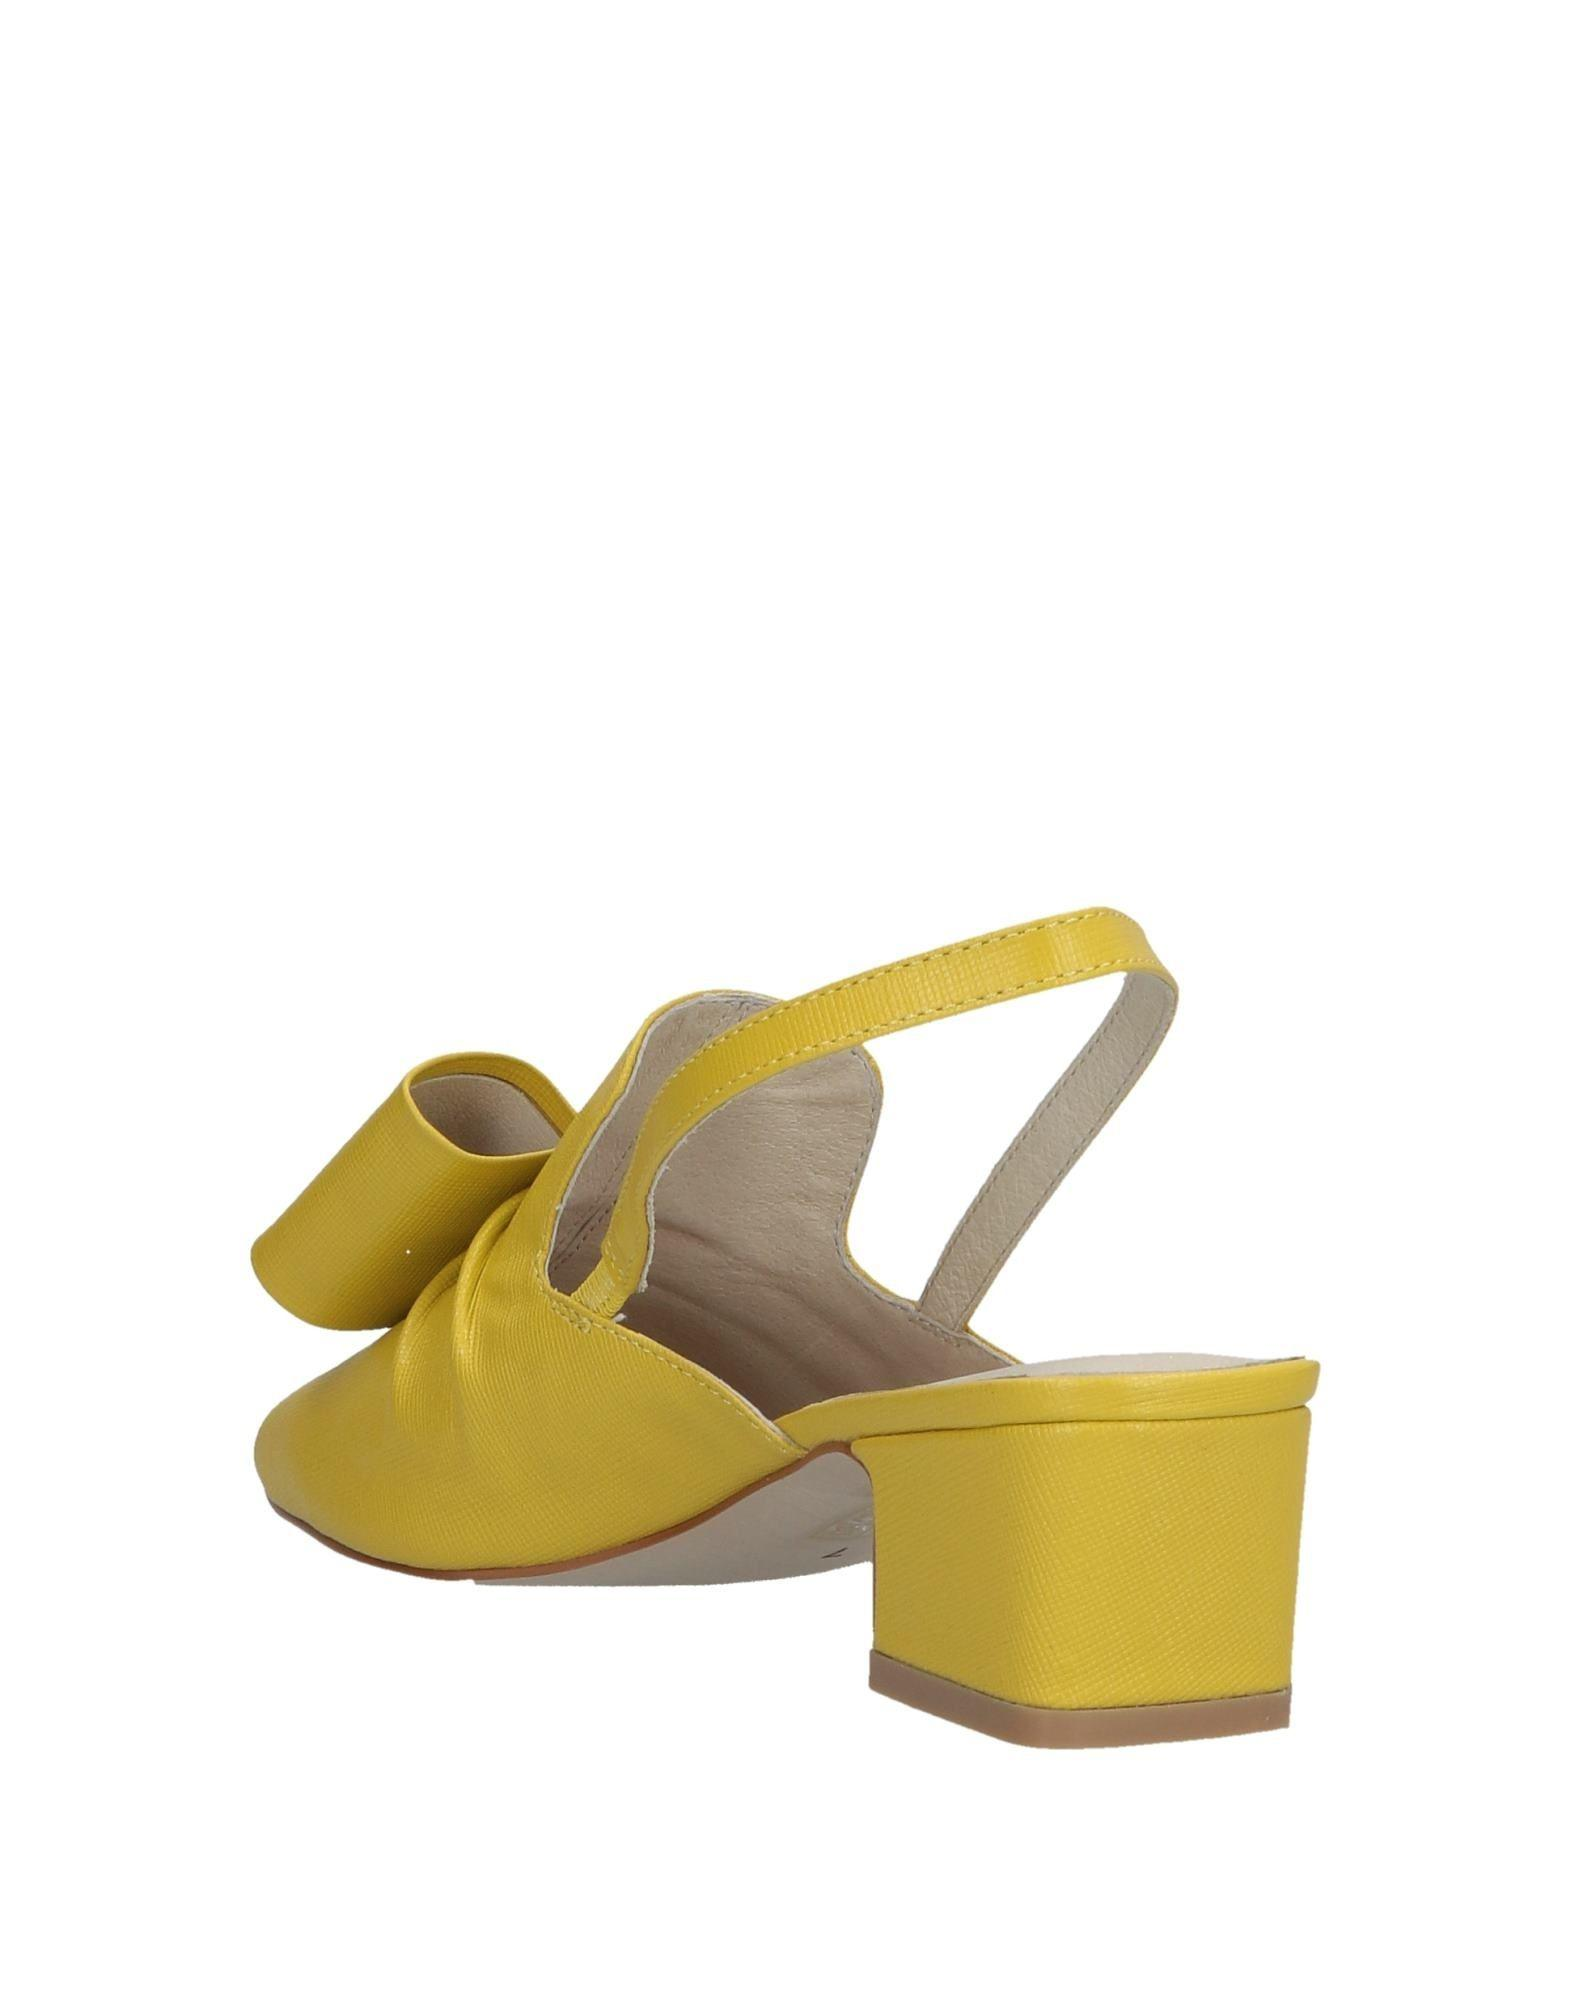 Intentionally Intentionally Court Court Yellow Intentionally Yellow Intentionally Lyst in in Lyst Yellow in Lyst Court 4vPvrqd